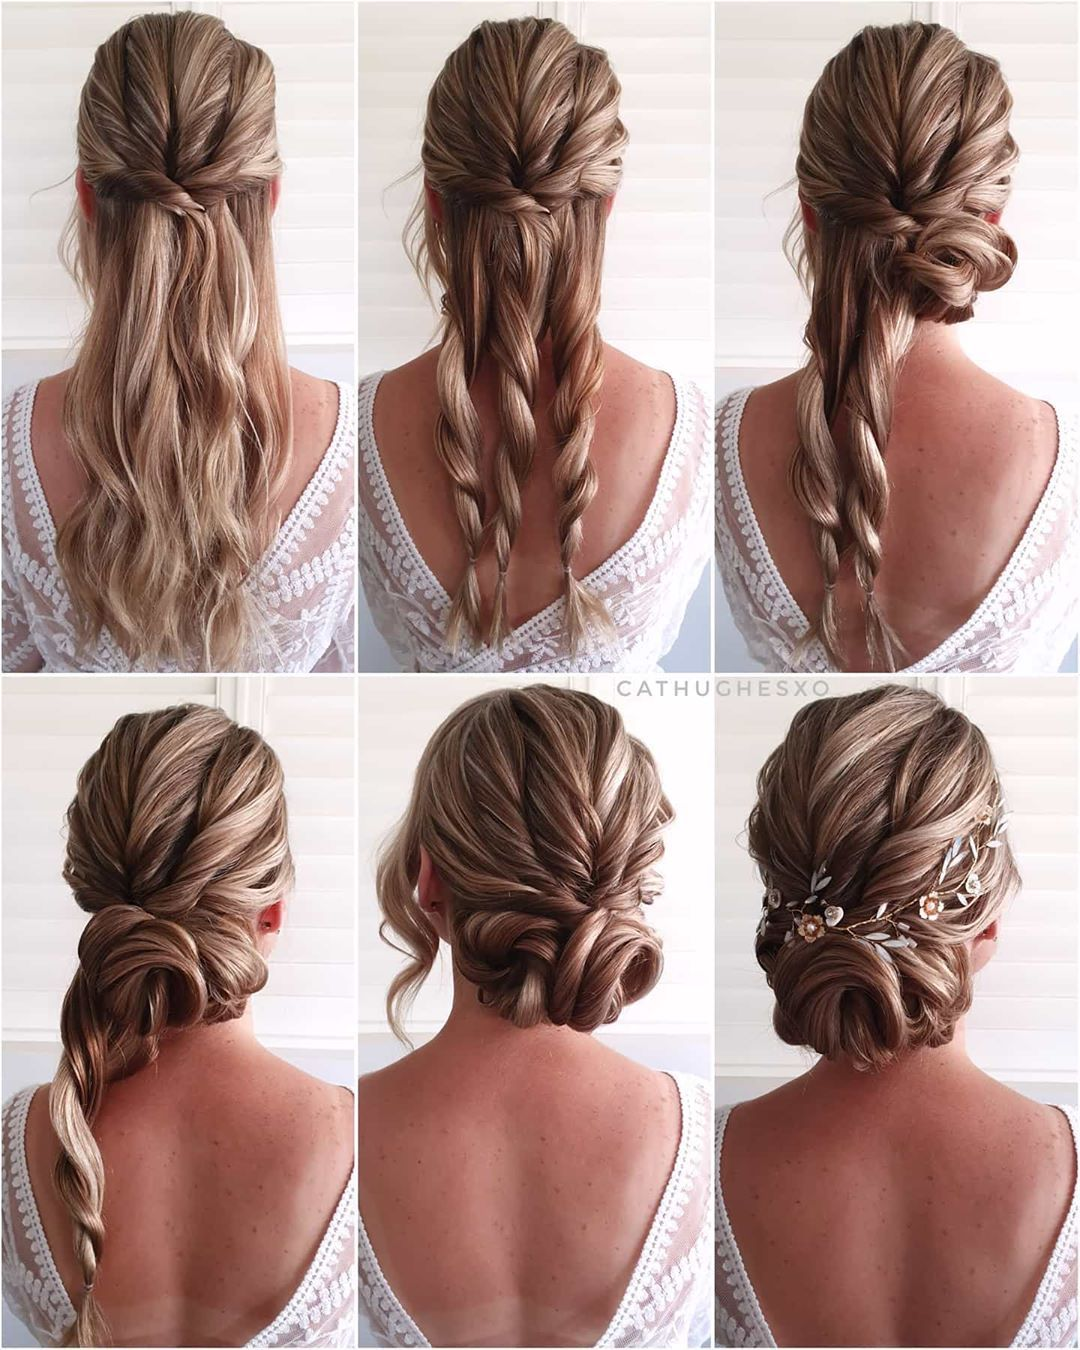 Simple And Pretty Diy Updo Hairstyle Tutorials For Wedding Guest Boho Updo Hairstyles Tutorials Hair Styles Wedding Hairstyles Tutorial